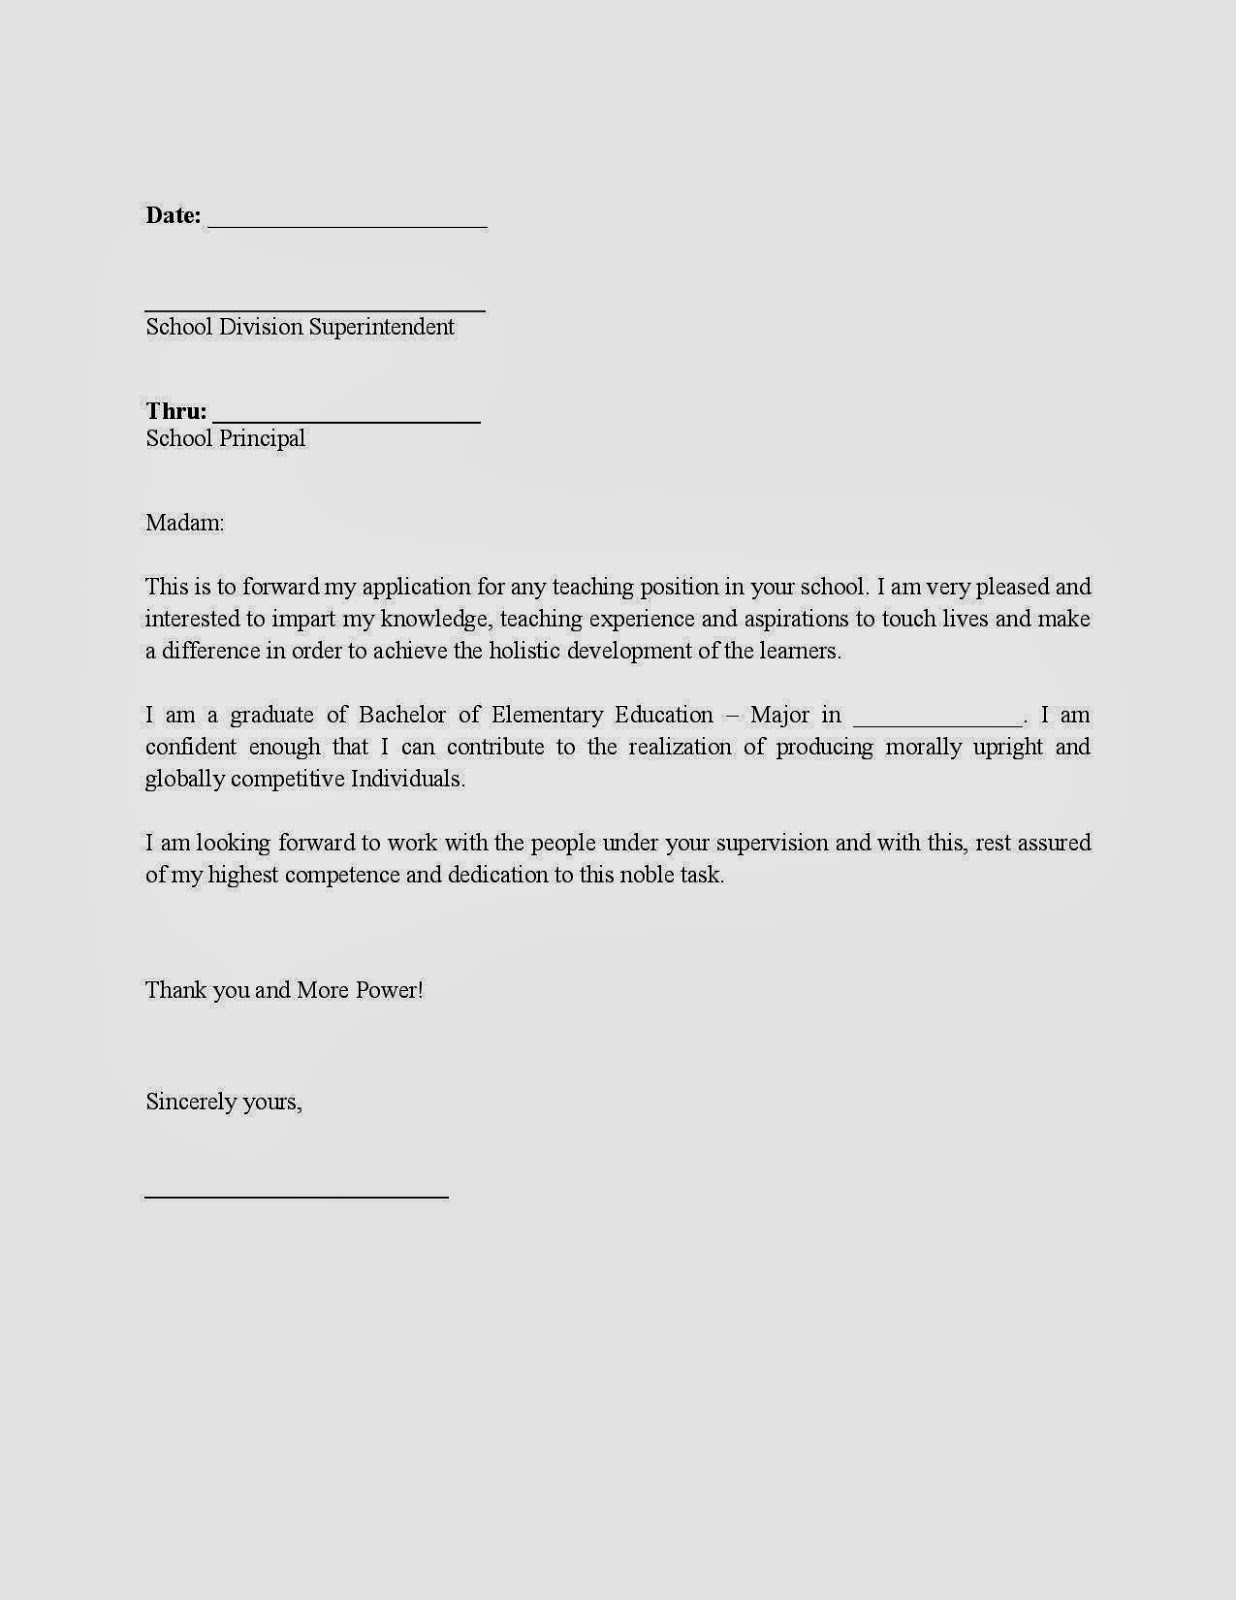 essay teachers essay essays about teaching essays on teaching  thank you essays teachers teacher appreciation poem funny short poems about teachers gracie teacher appreciation poem